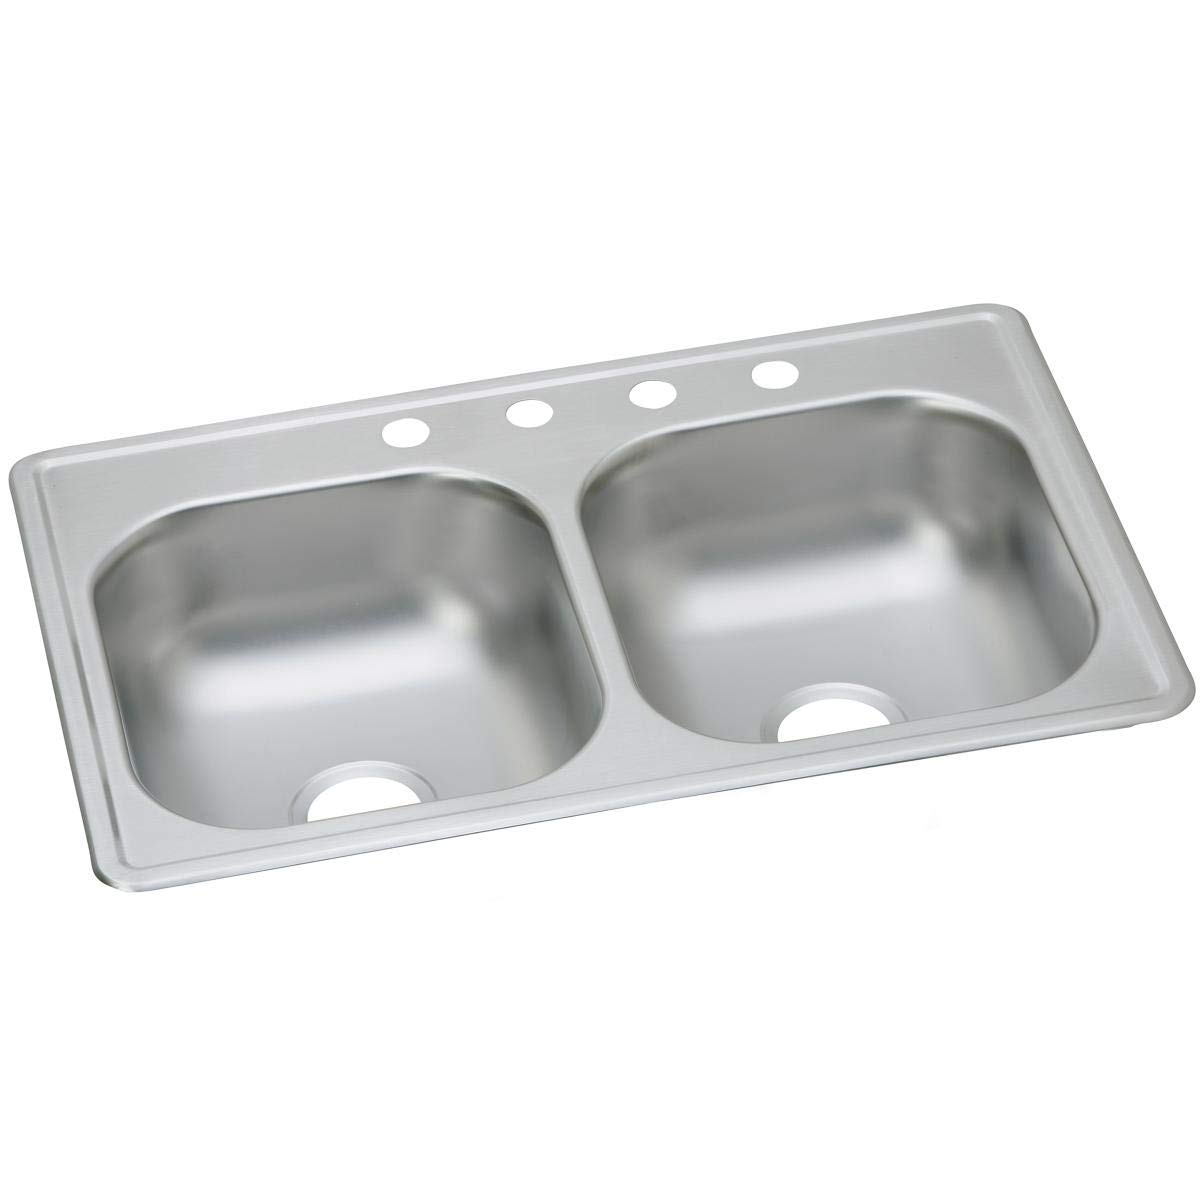 Dayton Dse233194 Equal Double Bowl Drop In Stainless Steel Sink